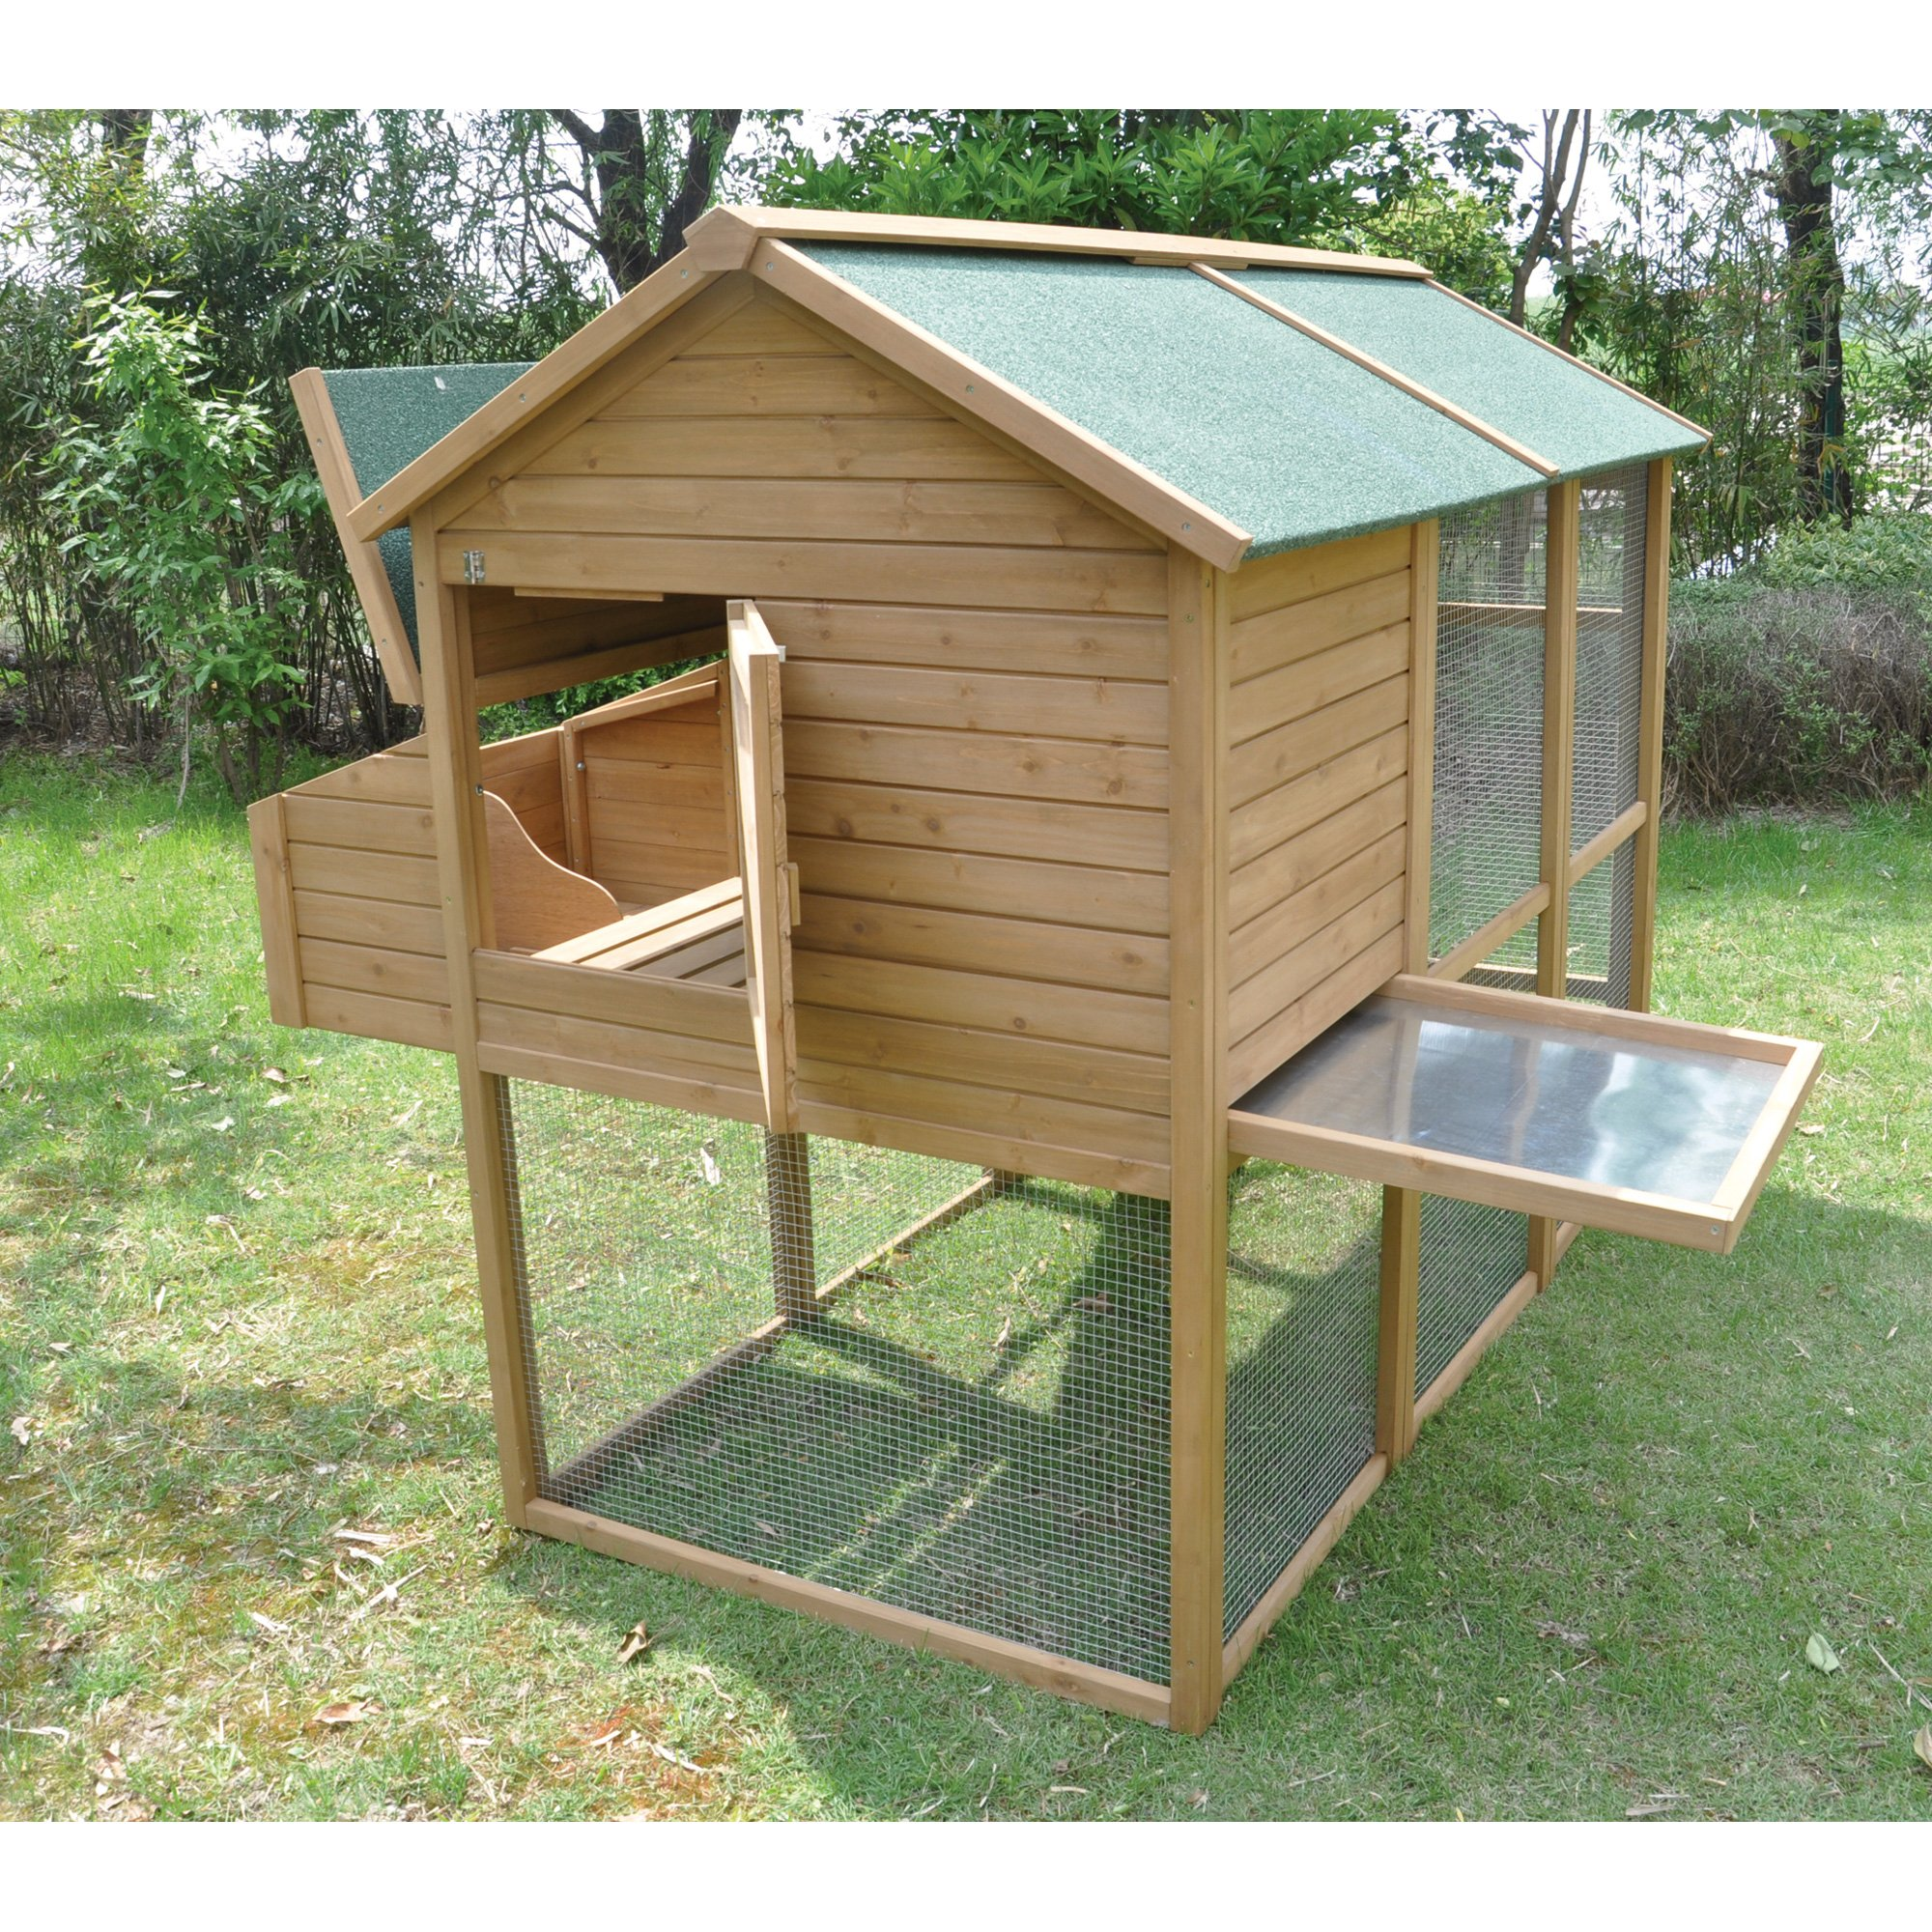 Tall Wooden Chicken Coop - 6 to 8 Hens